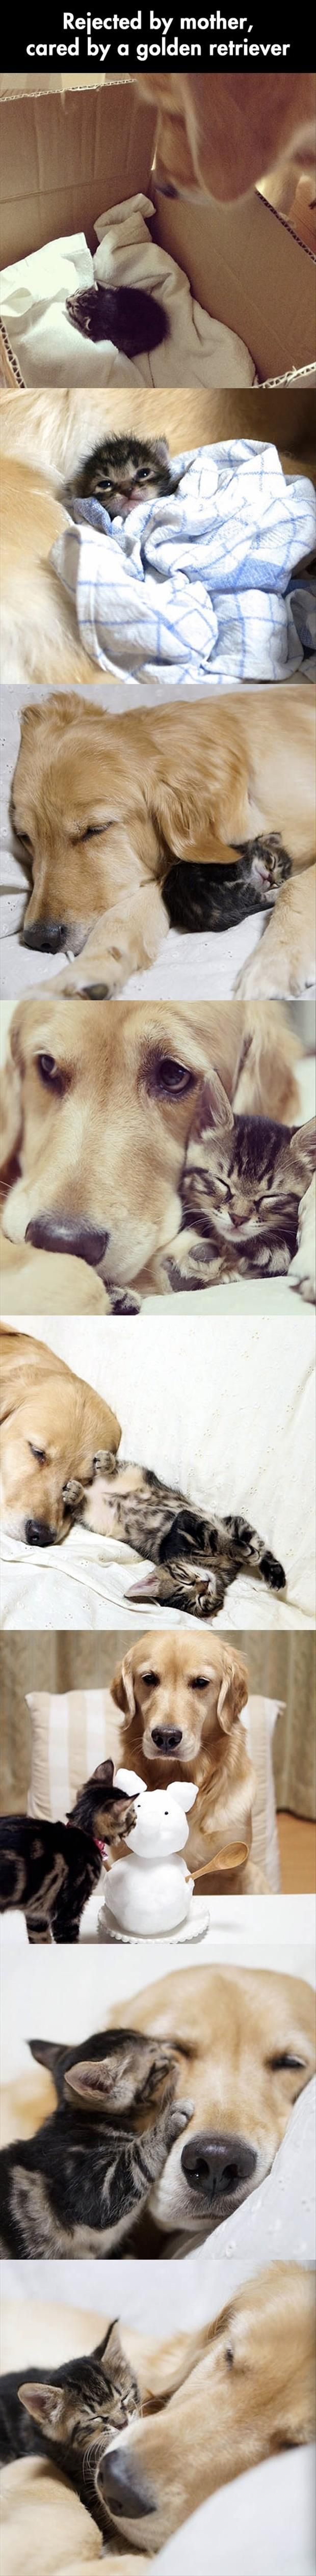 #Cat rejected by its #mother, cared for by a golden retriever.. Awww so cute -